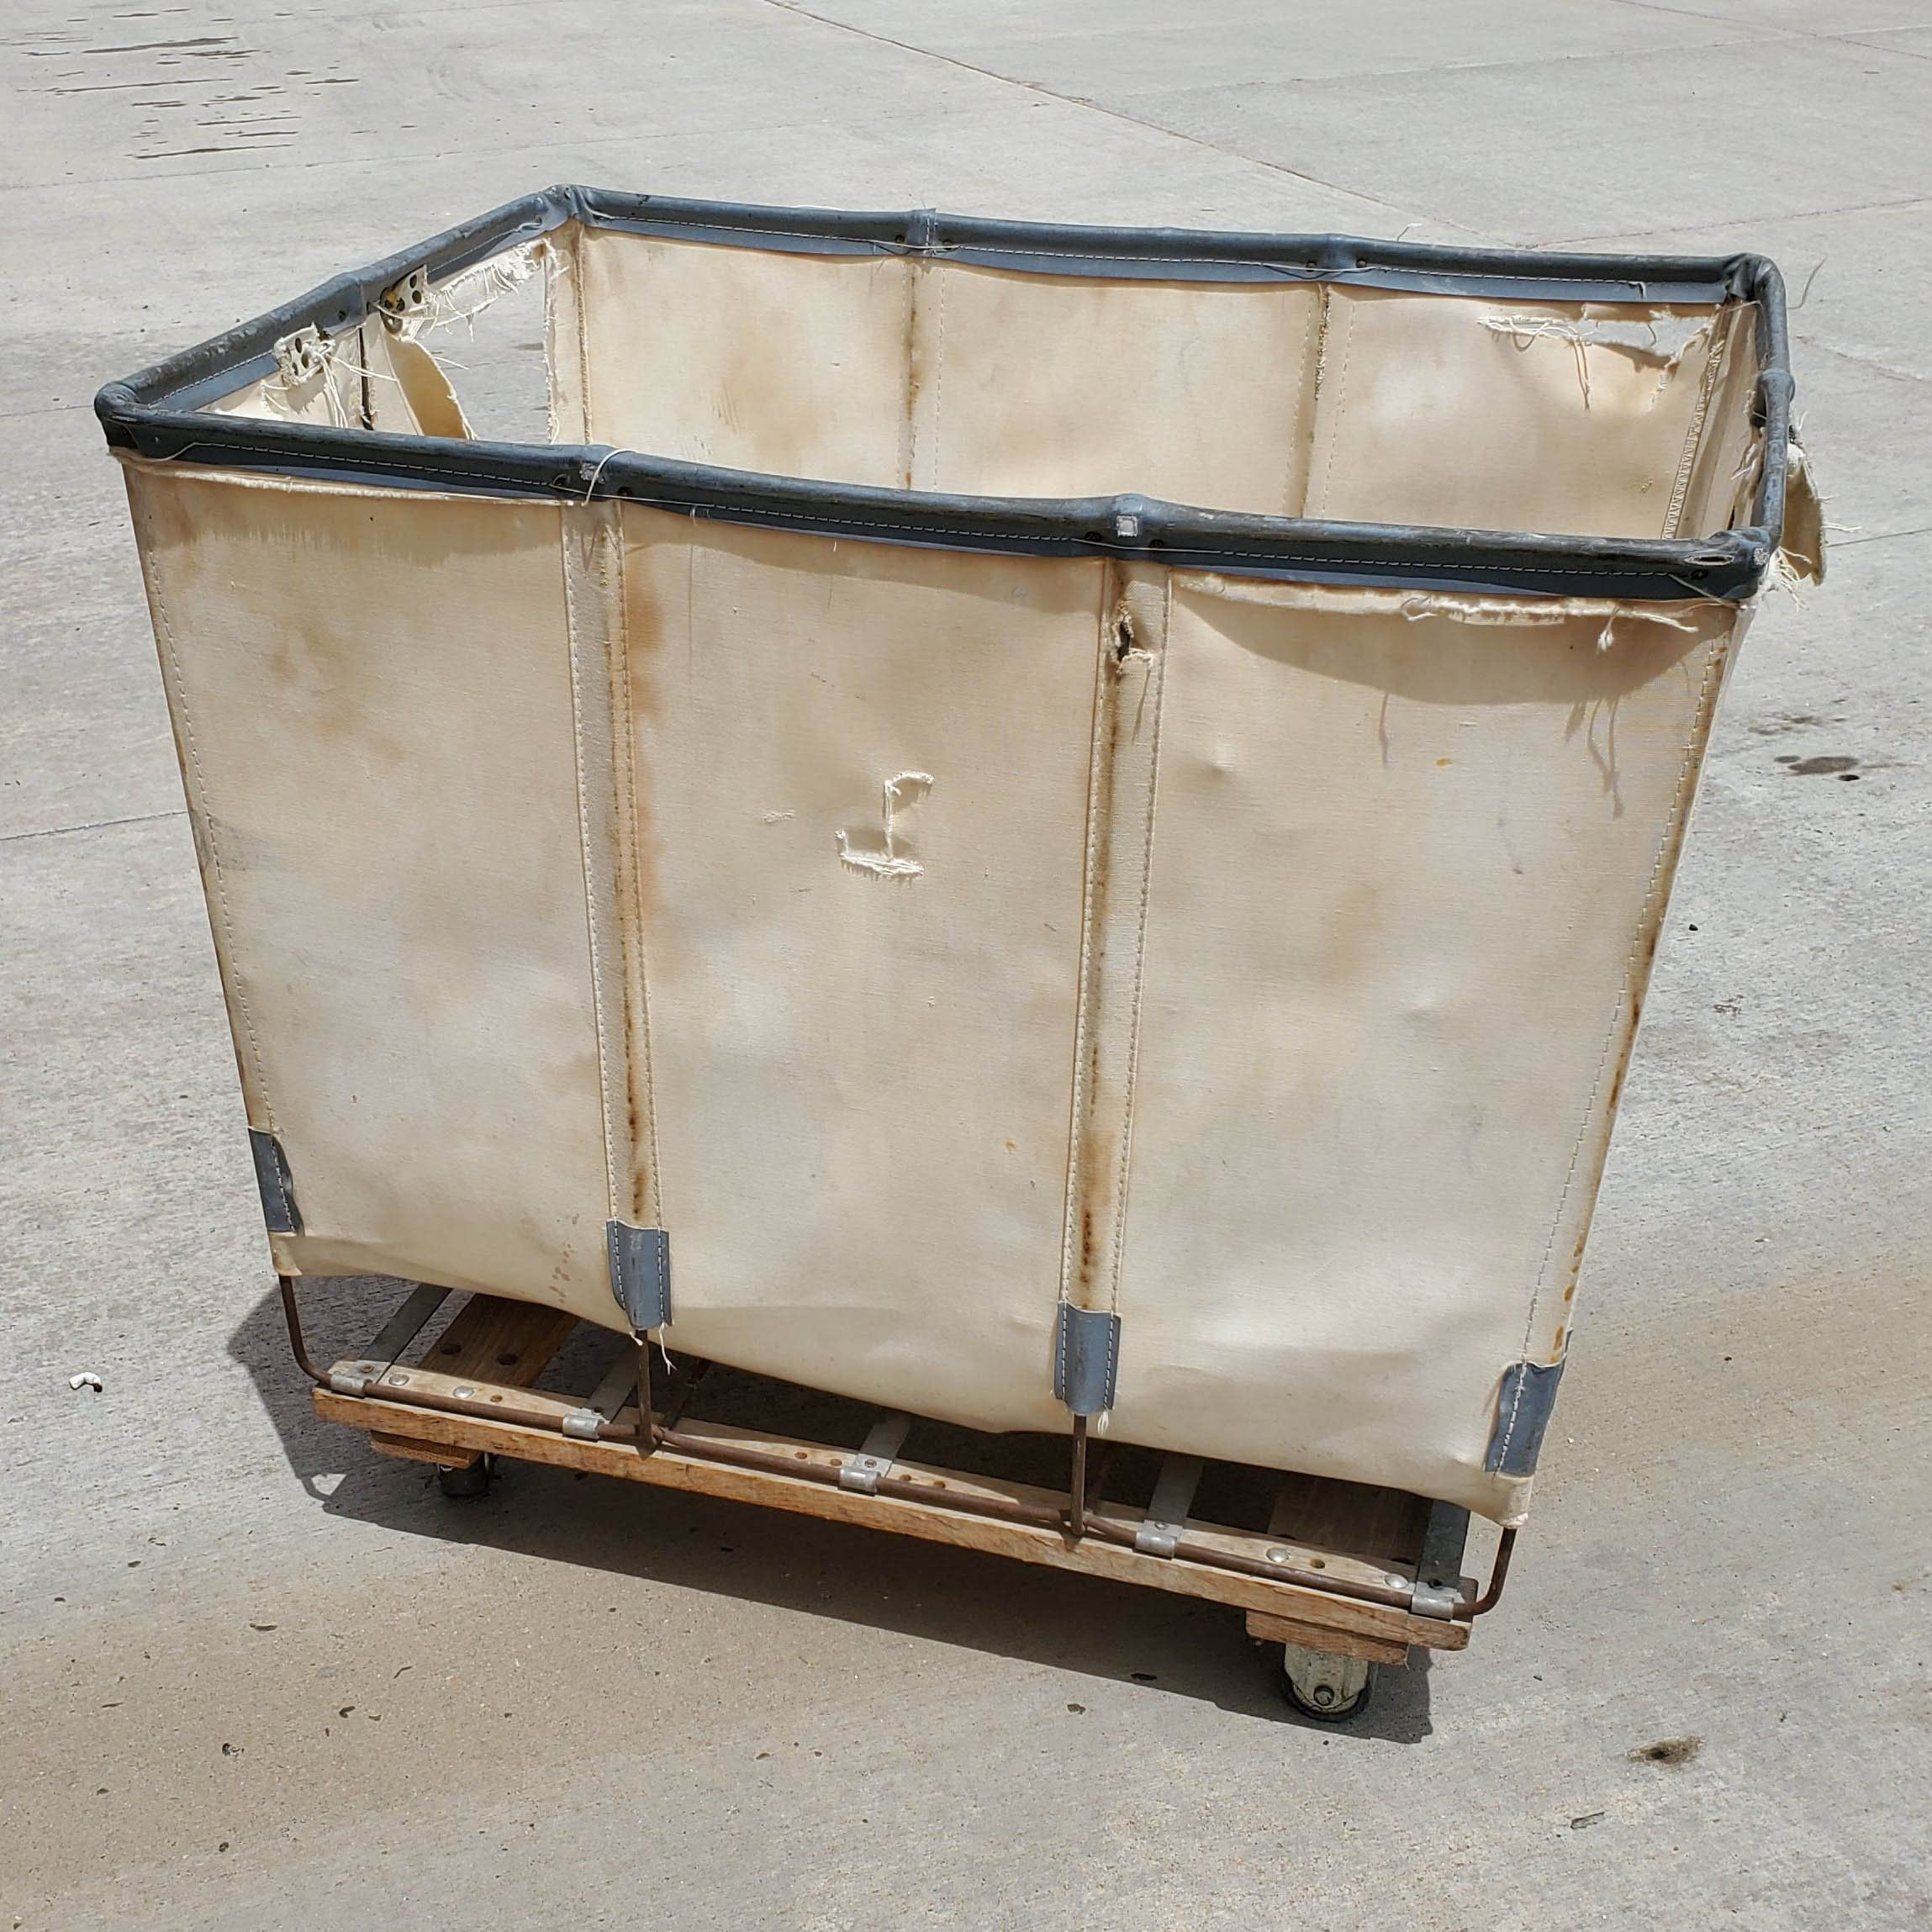 Industrial Laundry Basket Vintage Mail Cart On Rolling Casters